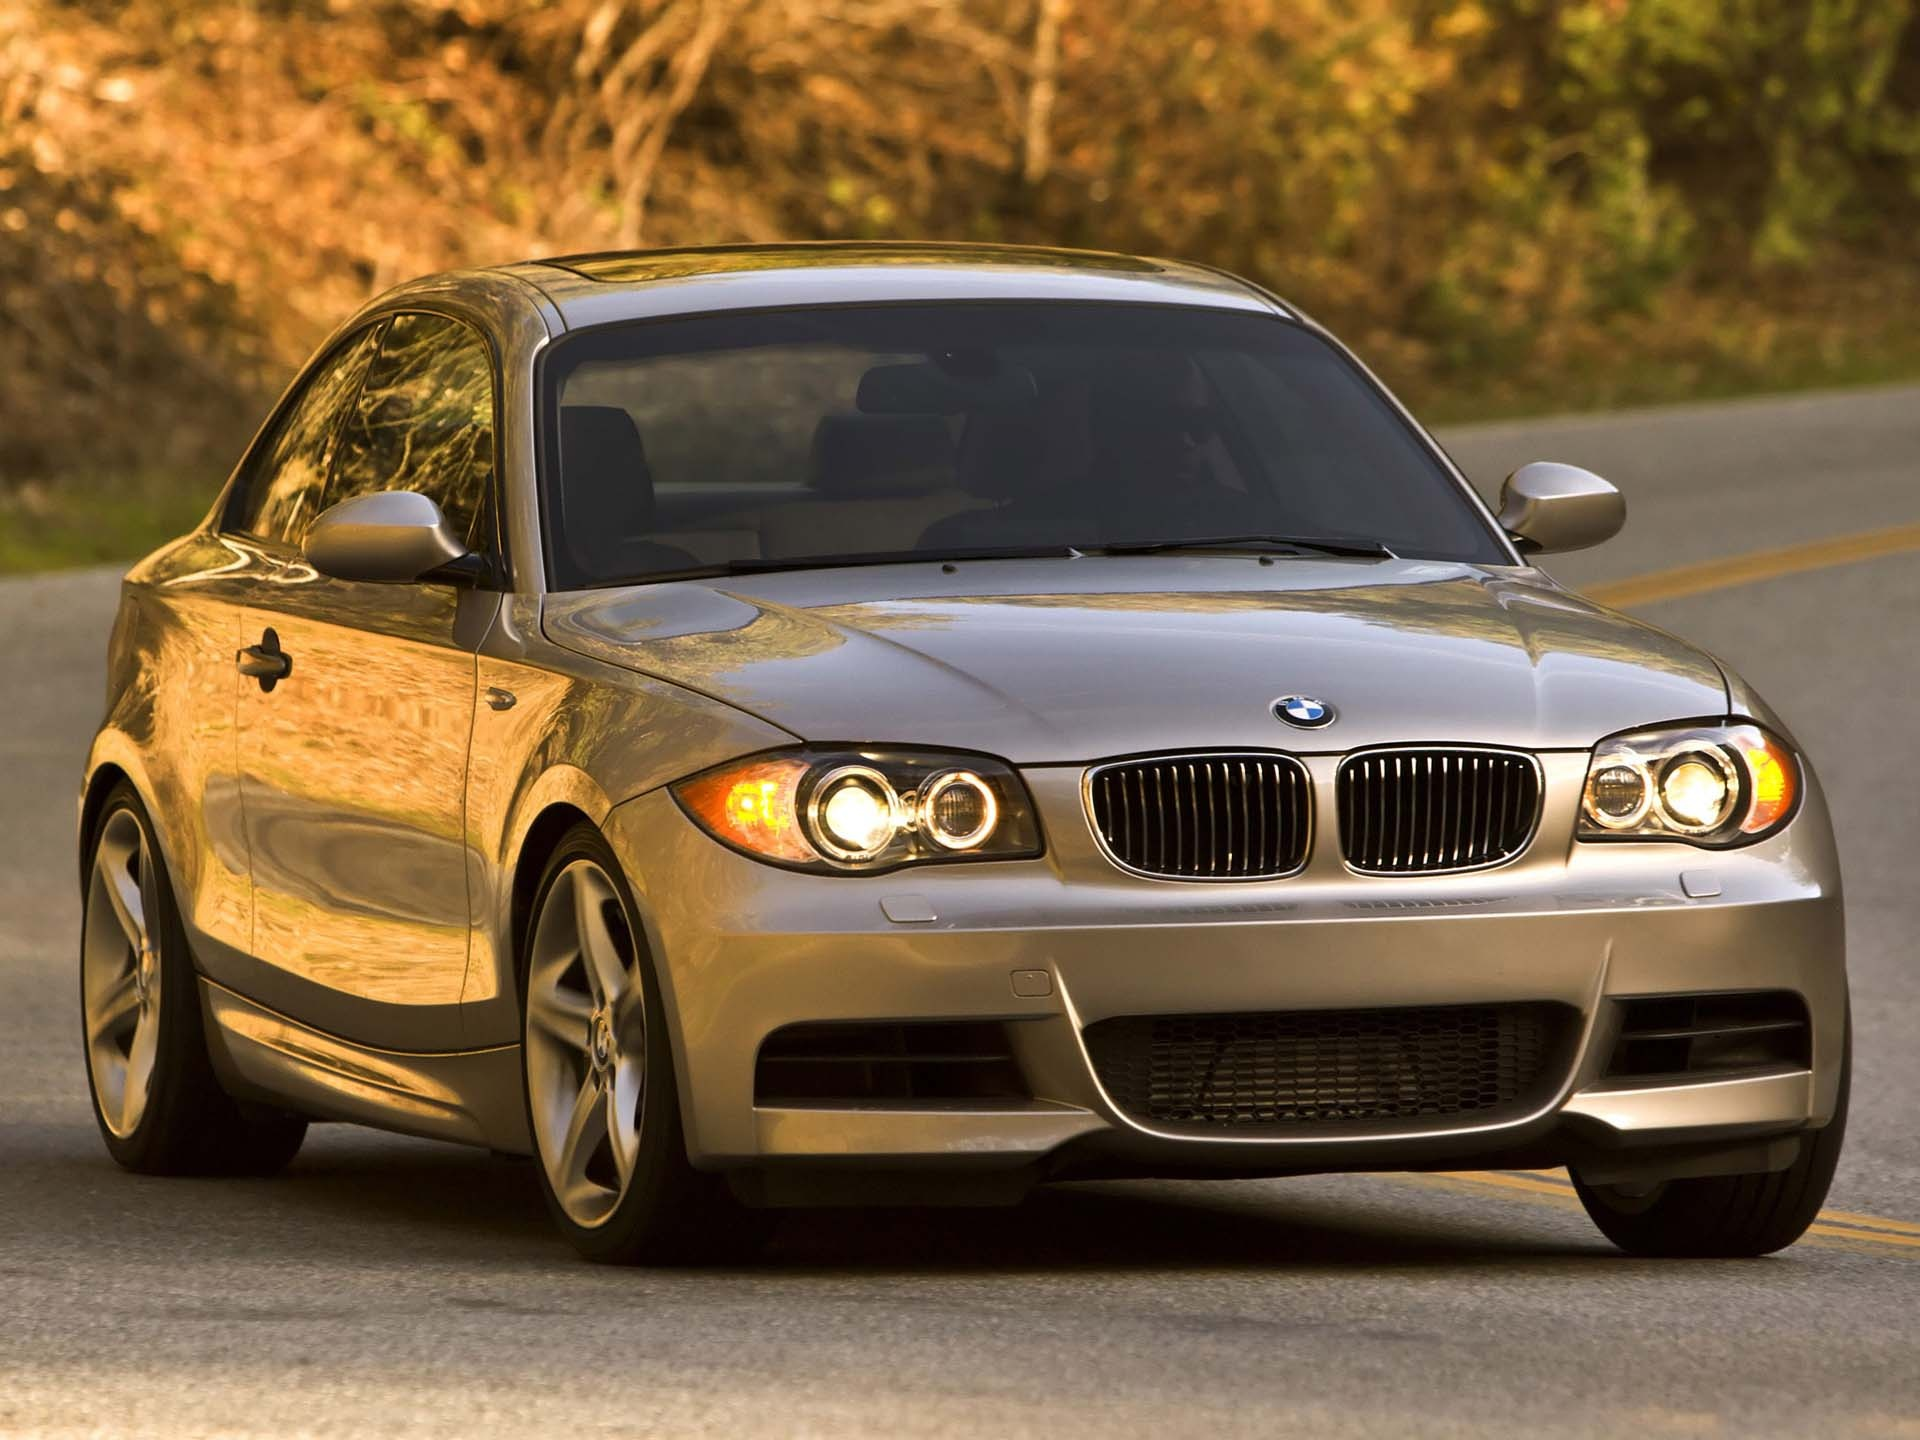 bmw 1er coupe (e82) 2016 images #11